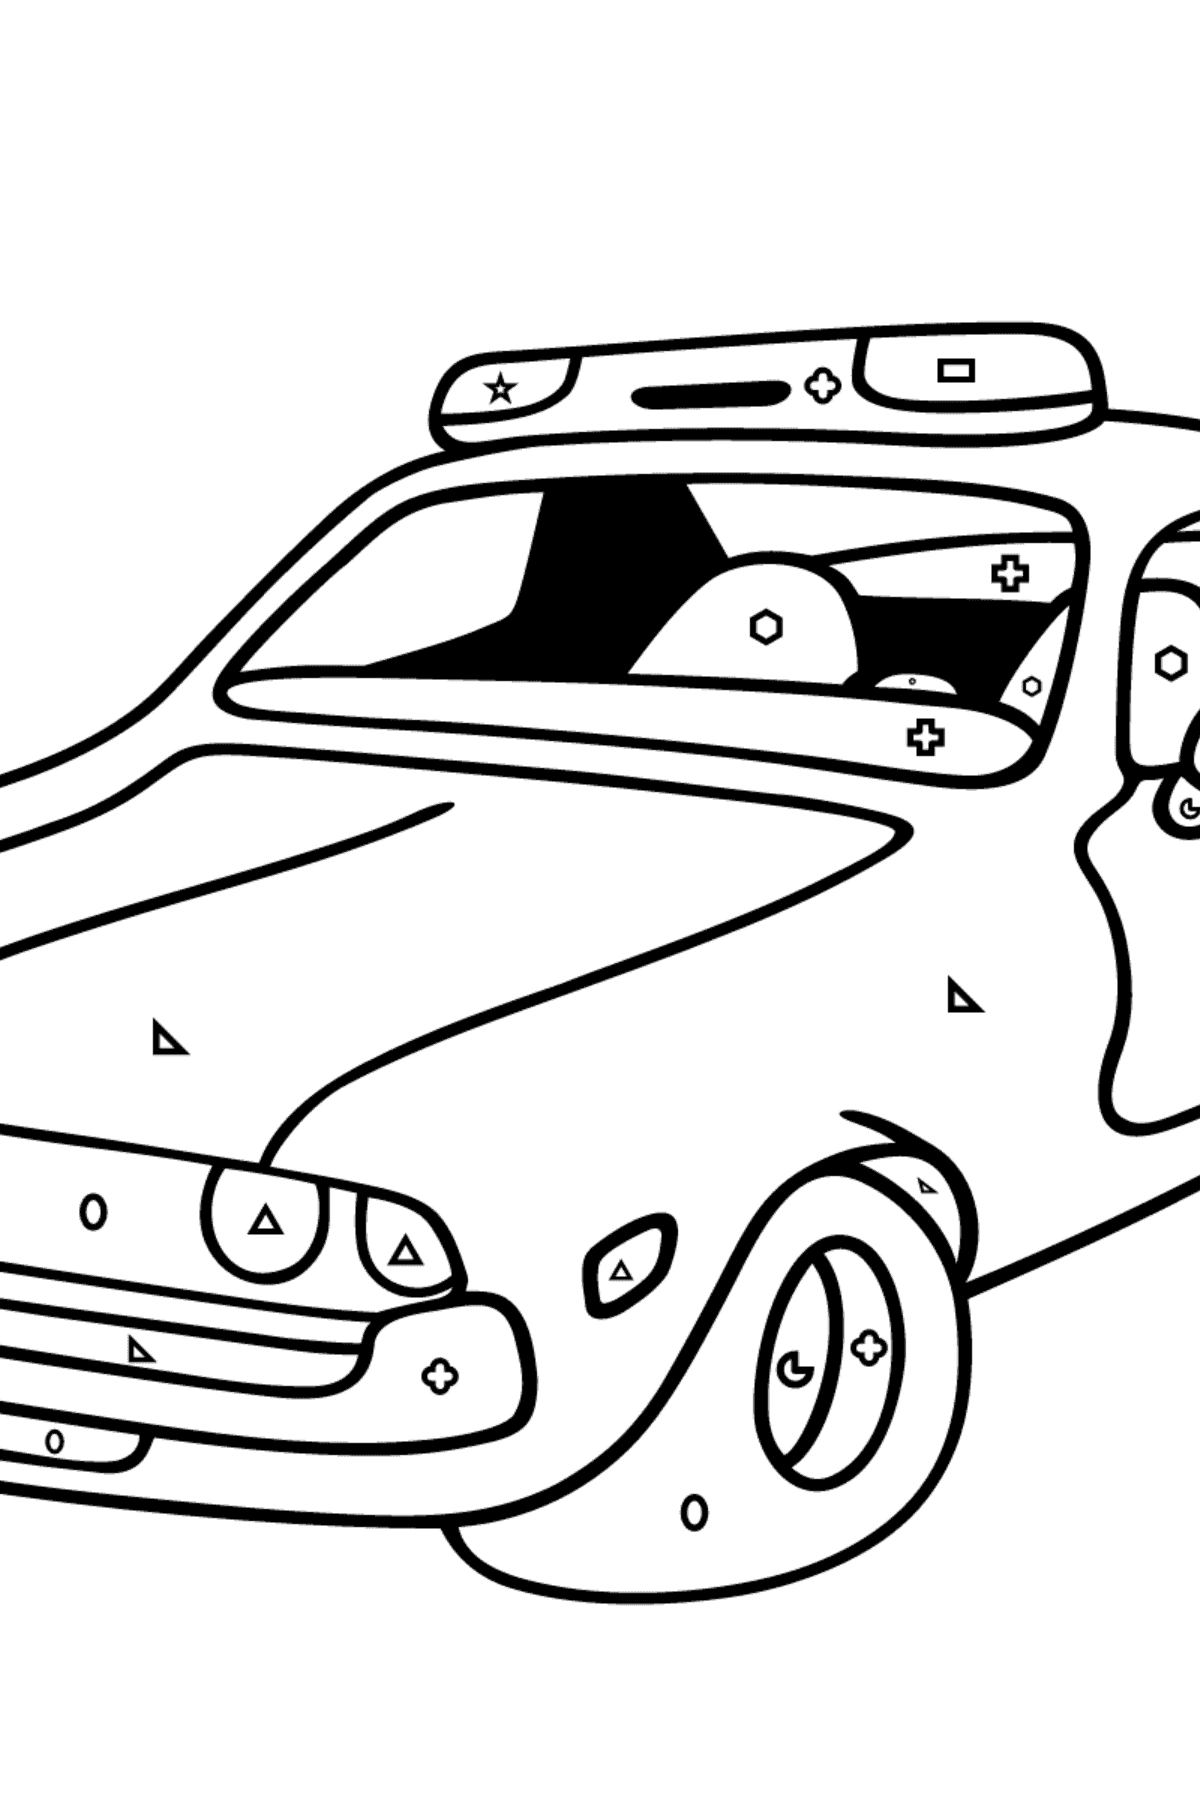 Coloring Page - A Red Police Car for Children  - Color by Geometric Shapes